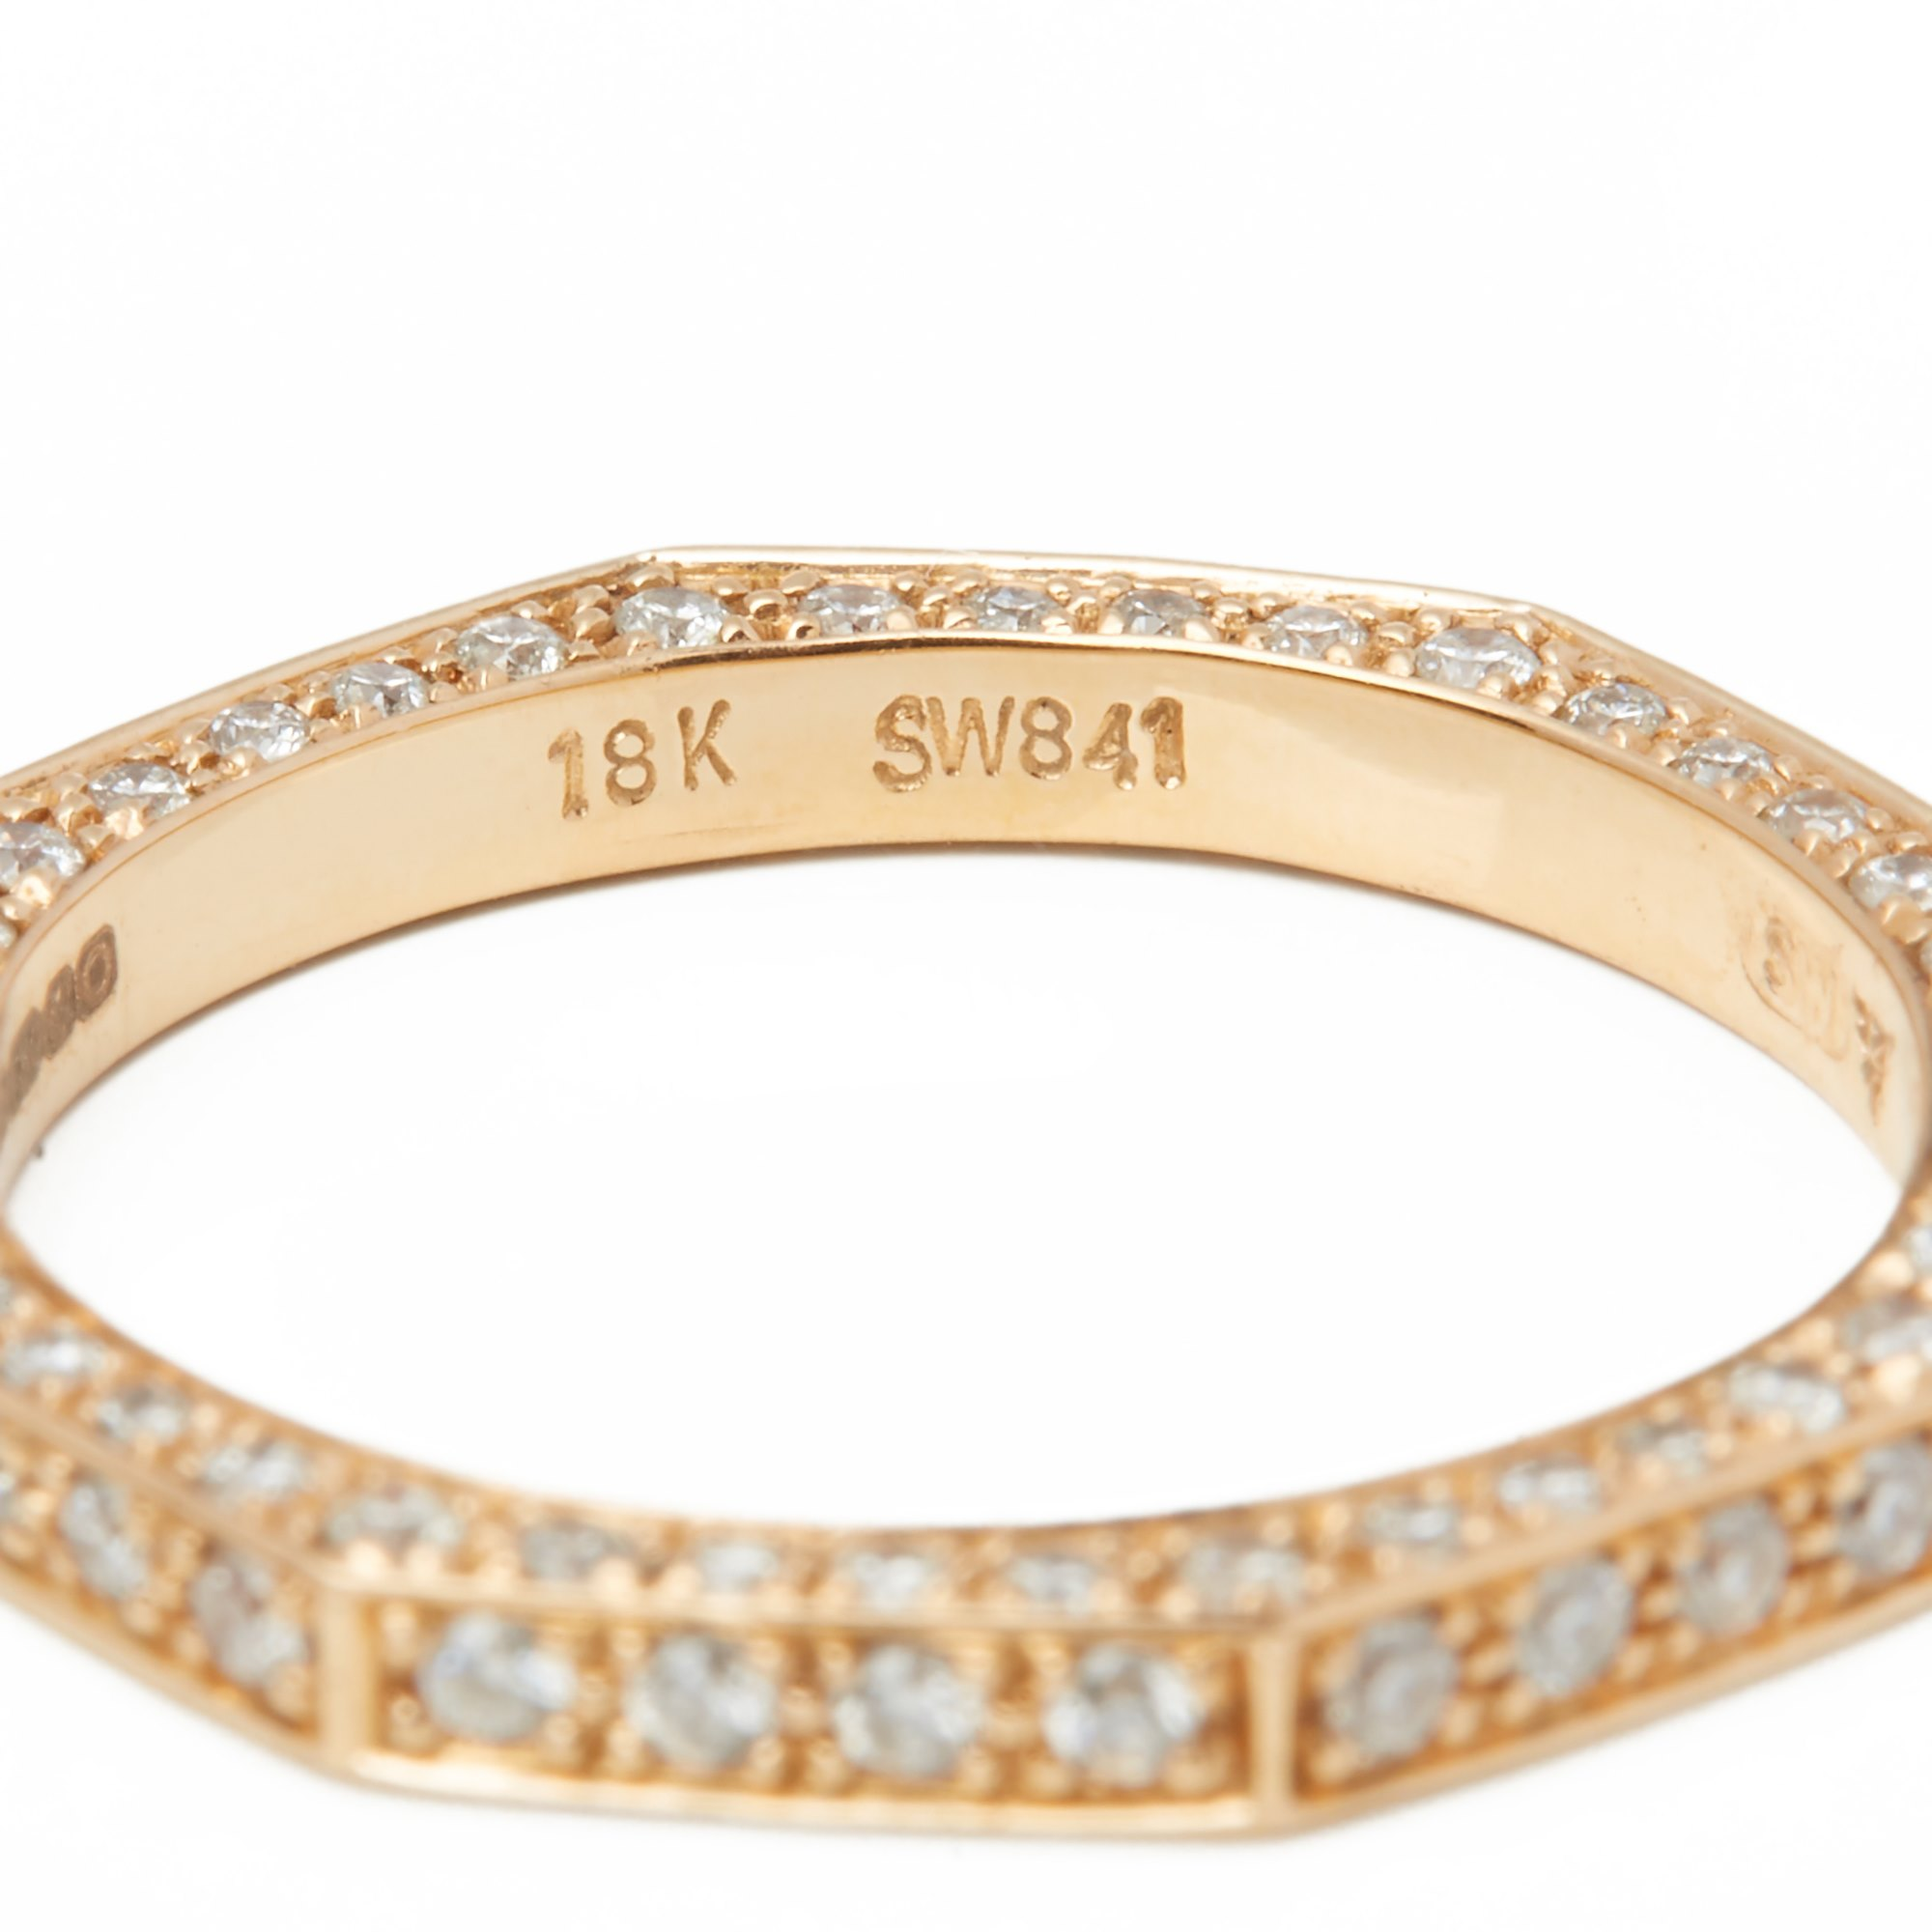 Stephen Webster 18k Rose Gold Deco Diamond Full Eternity Ring